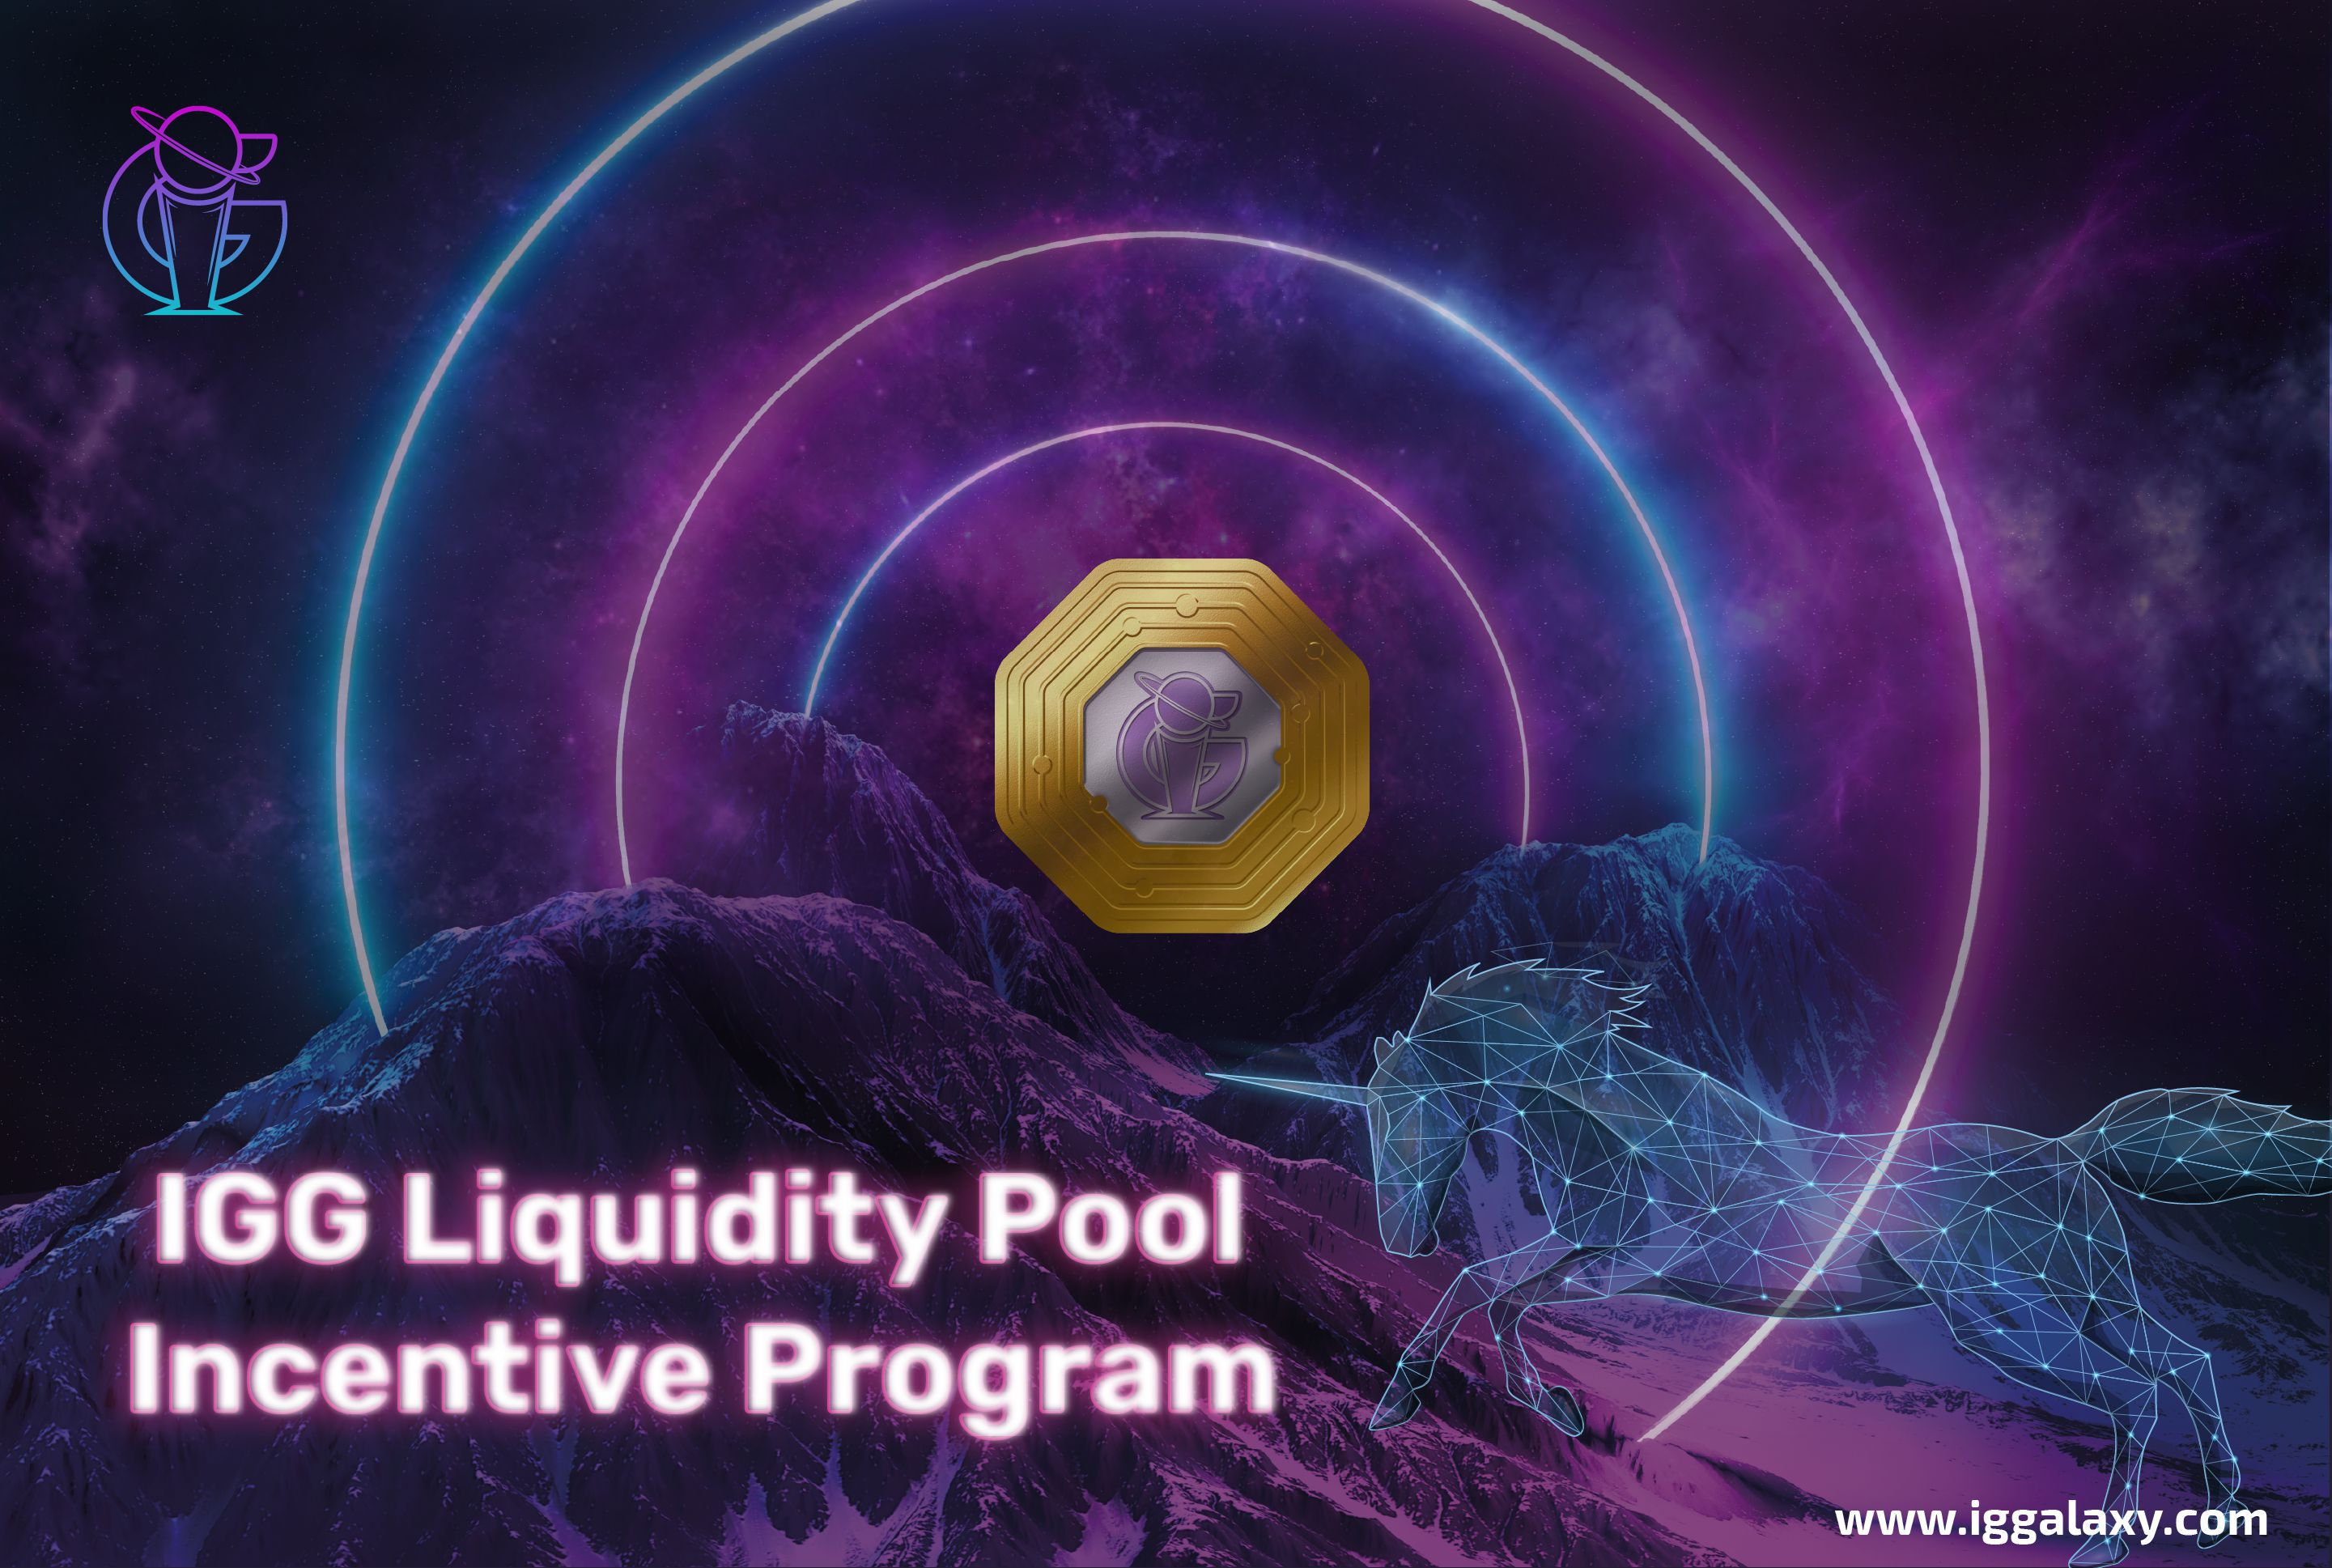 IGG/ETH UniSwap Liquidity Rewards Period Details: 29 November - 13 December